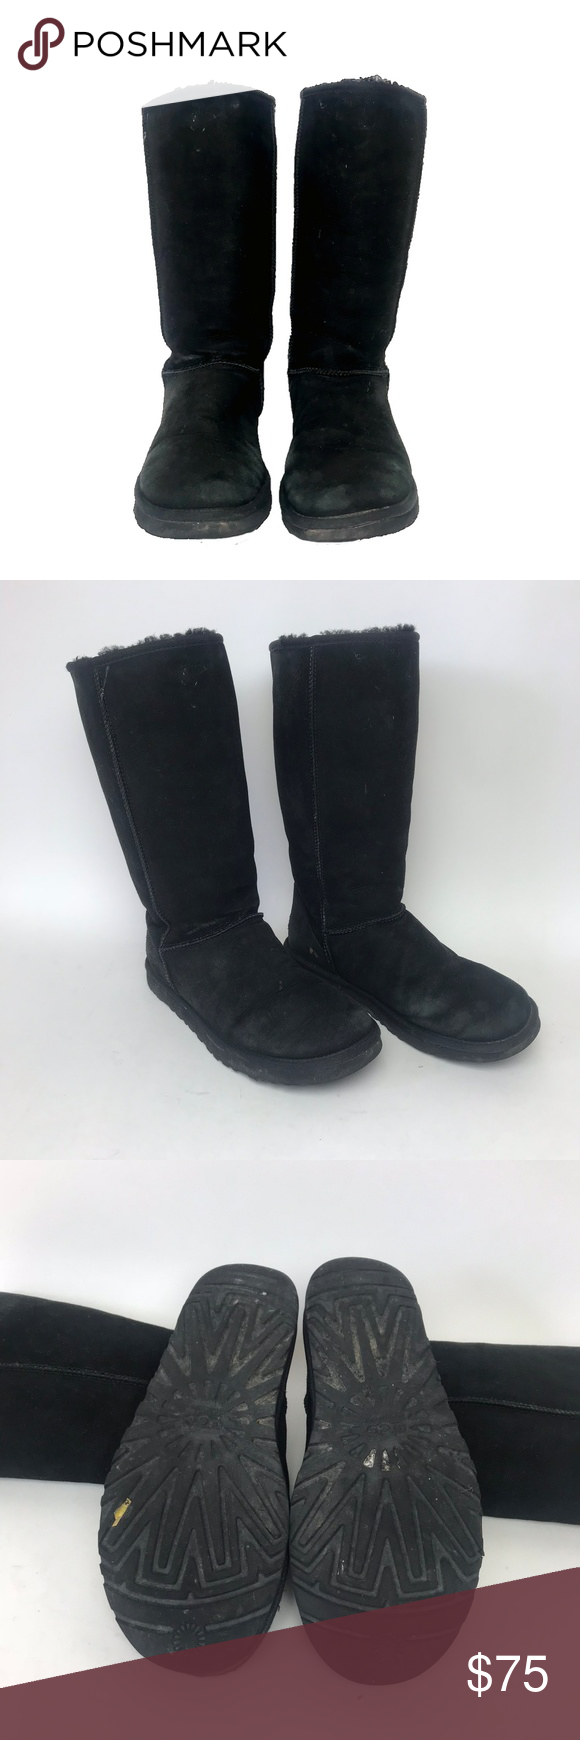 749cef612f2a UGG Classic Tall Black Boots Size 8 UGG Australia Classic Tall Boots in Black  Size 8 Pre-owned  Any defects of signs of wear are shown in images -Both  boots ...